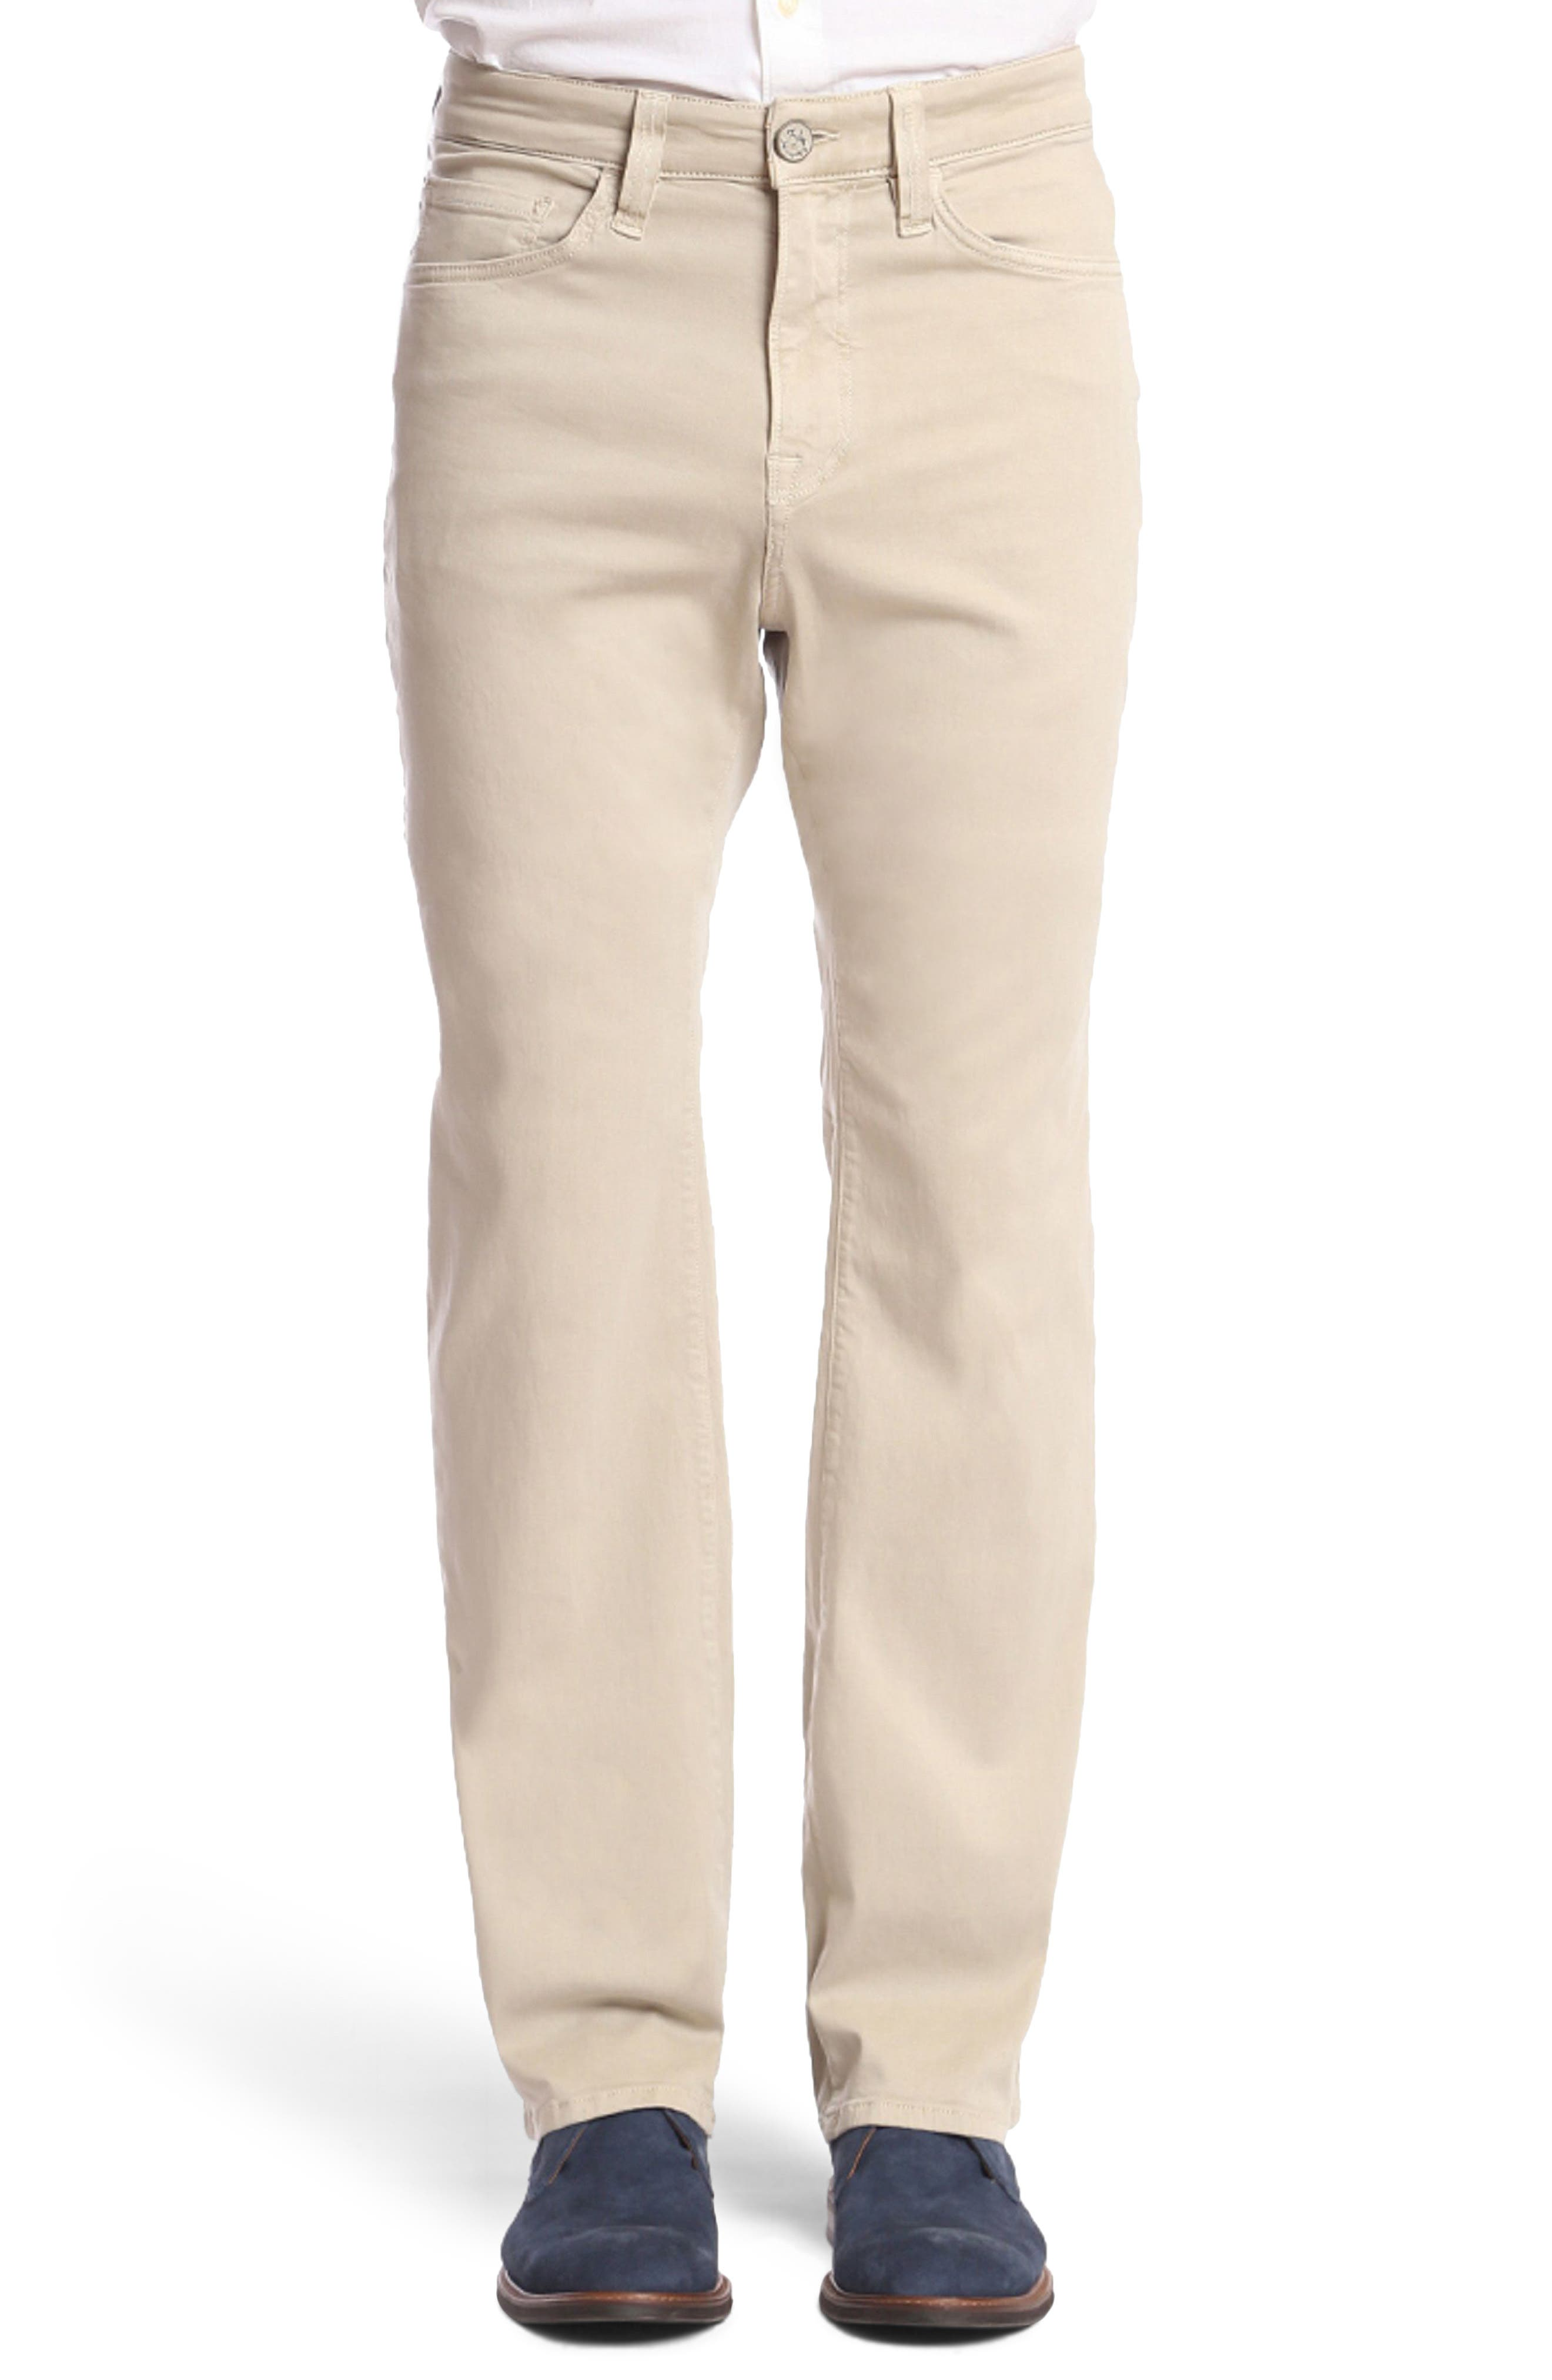 Charisma Relaxed Fit Jeans,                         Main,                         color, 250